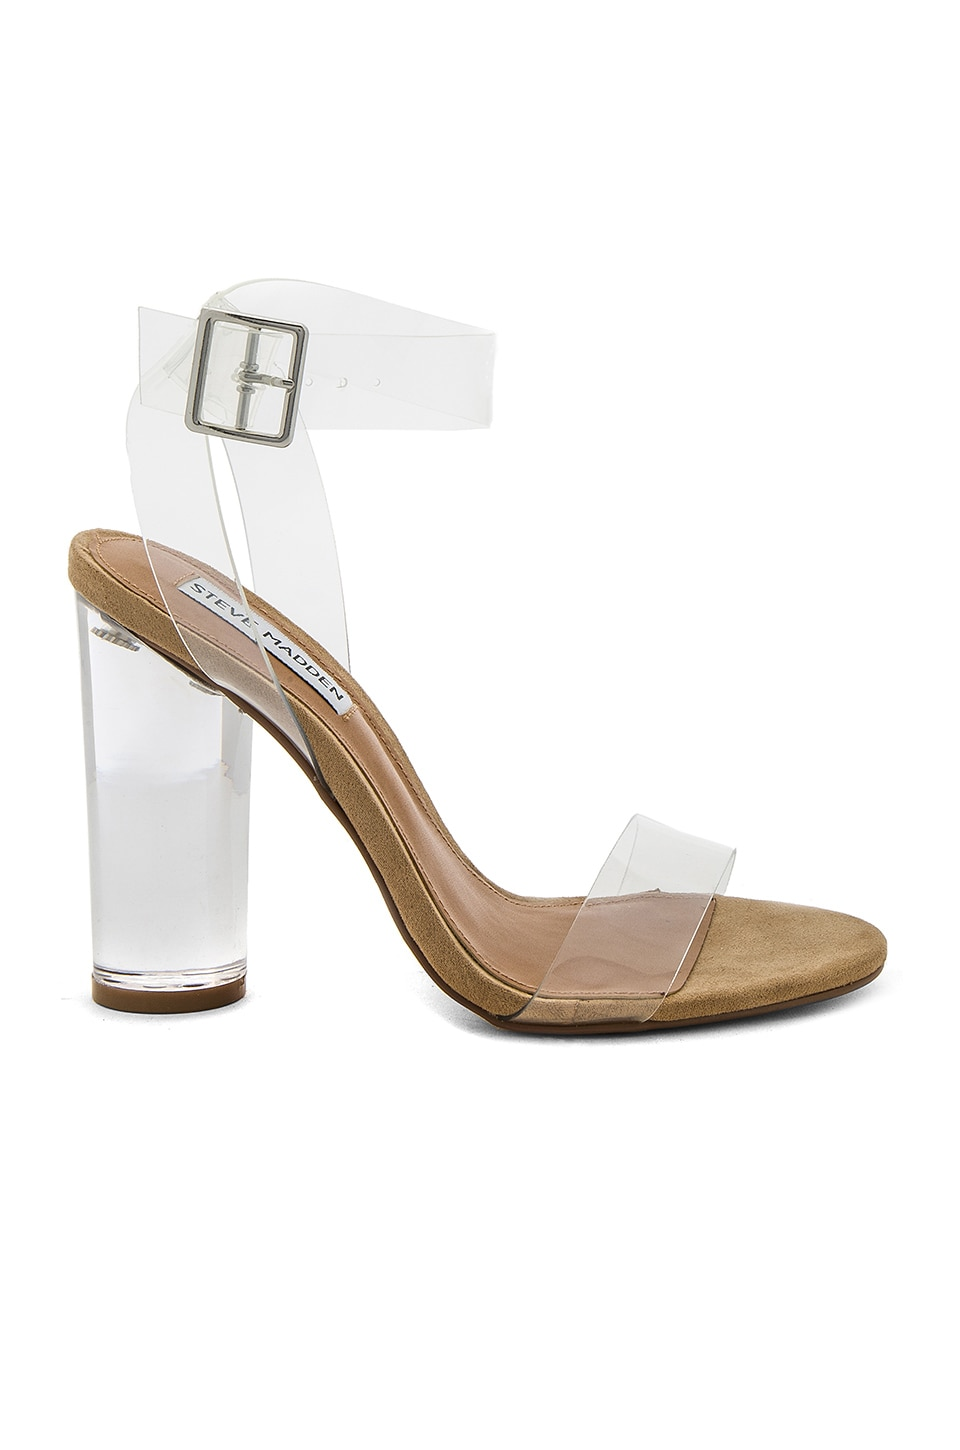 Steve Madden Clearer Heels in Clear